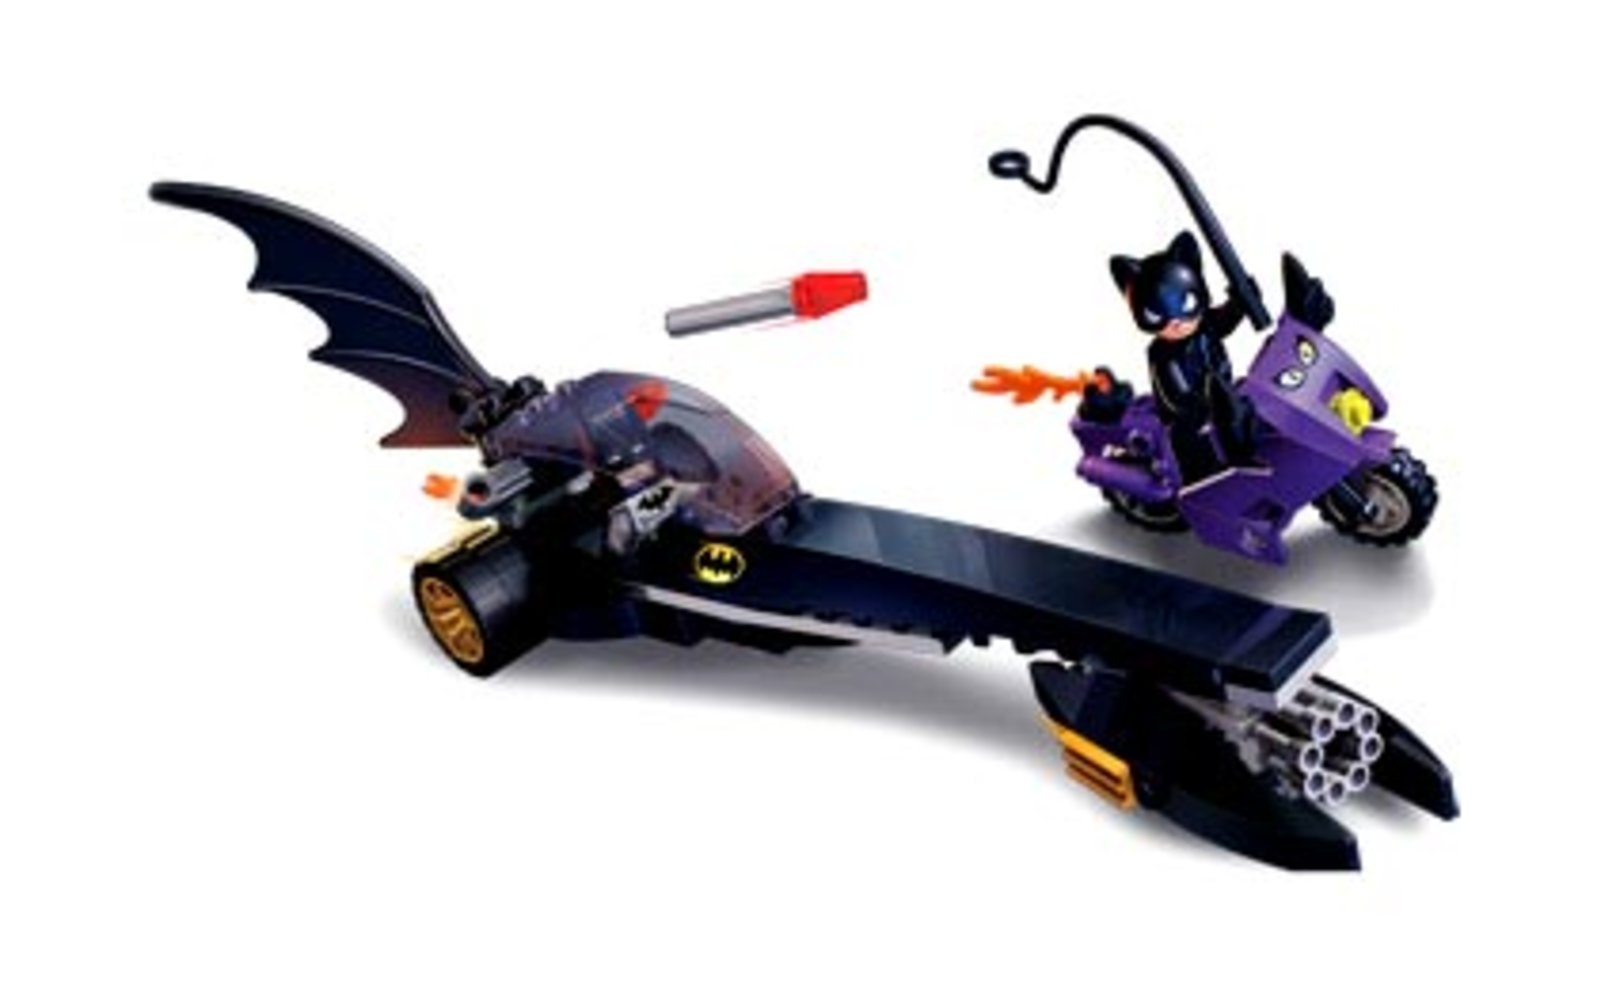 The Batman Dragster: Catwoman Pursuit